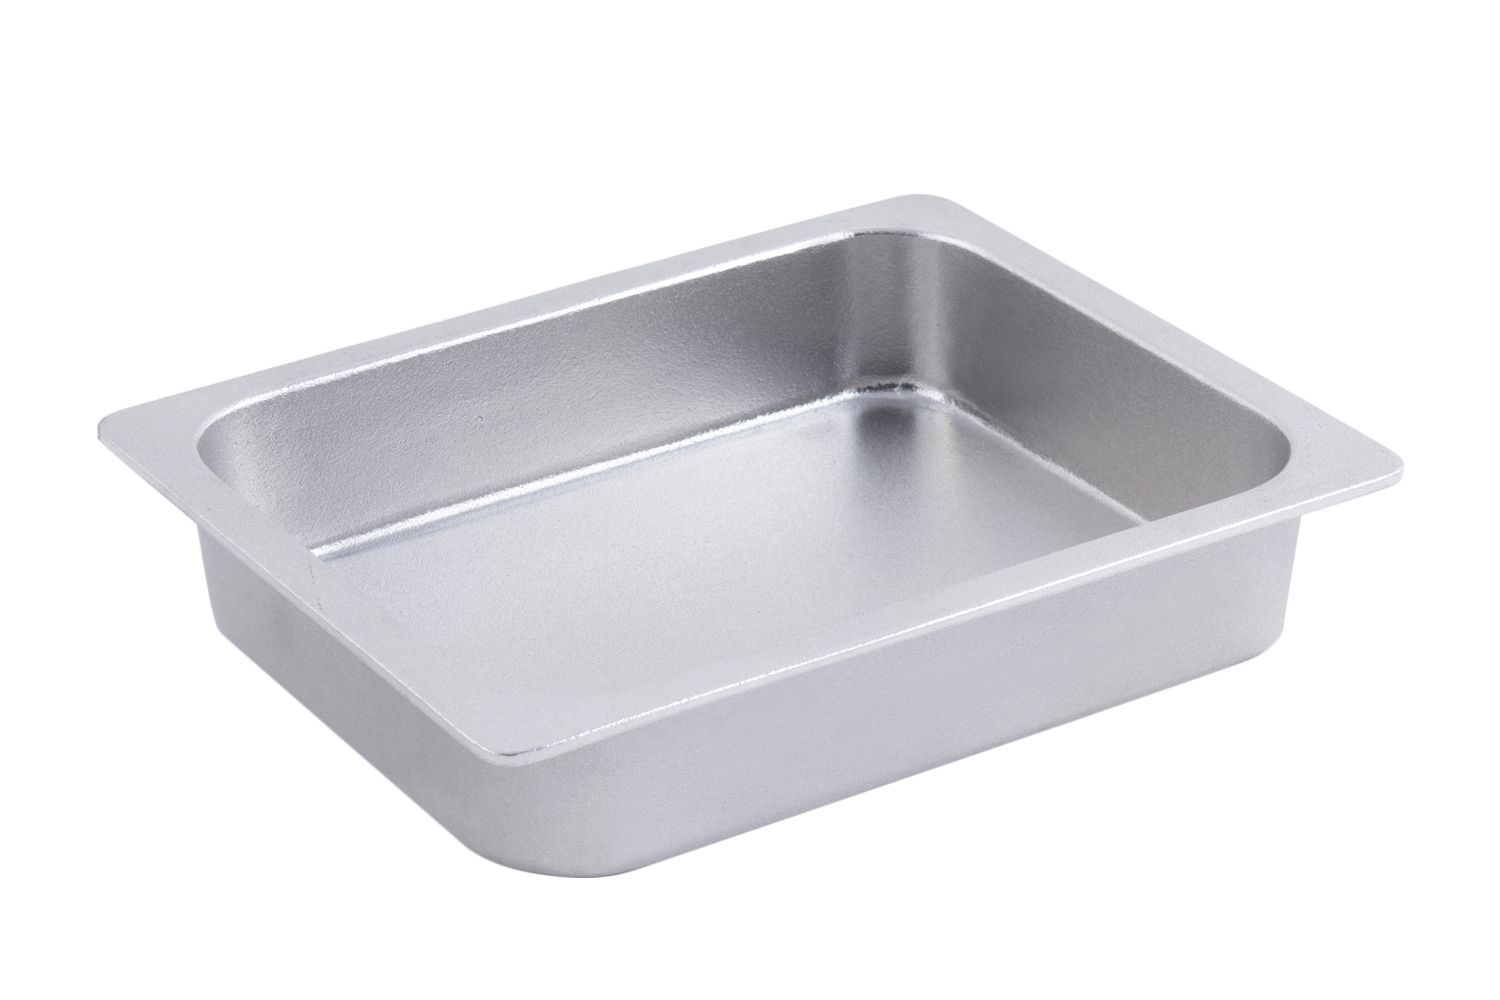 Bon Chef 5065P Half-Size Chafer Food Pan, Pewter Glo 4 Qt.